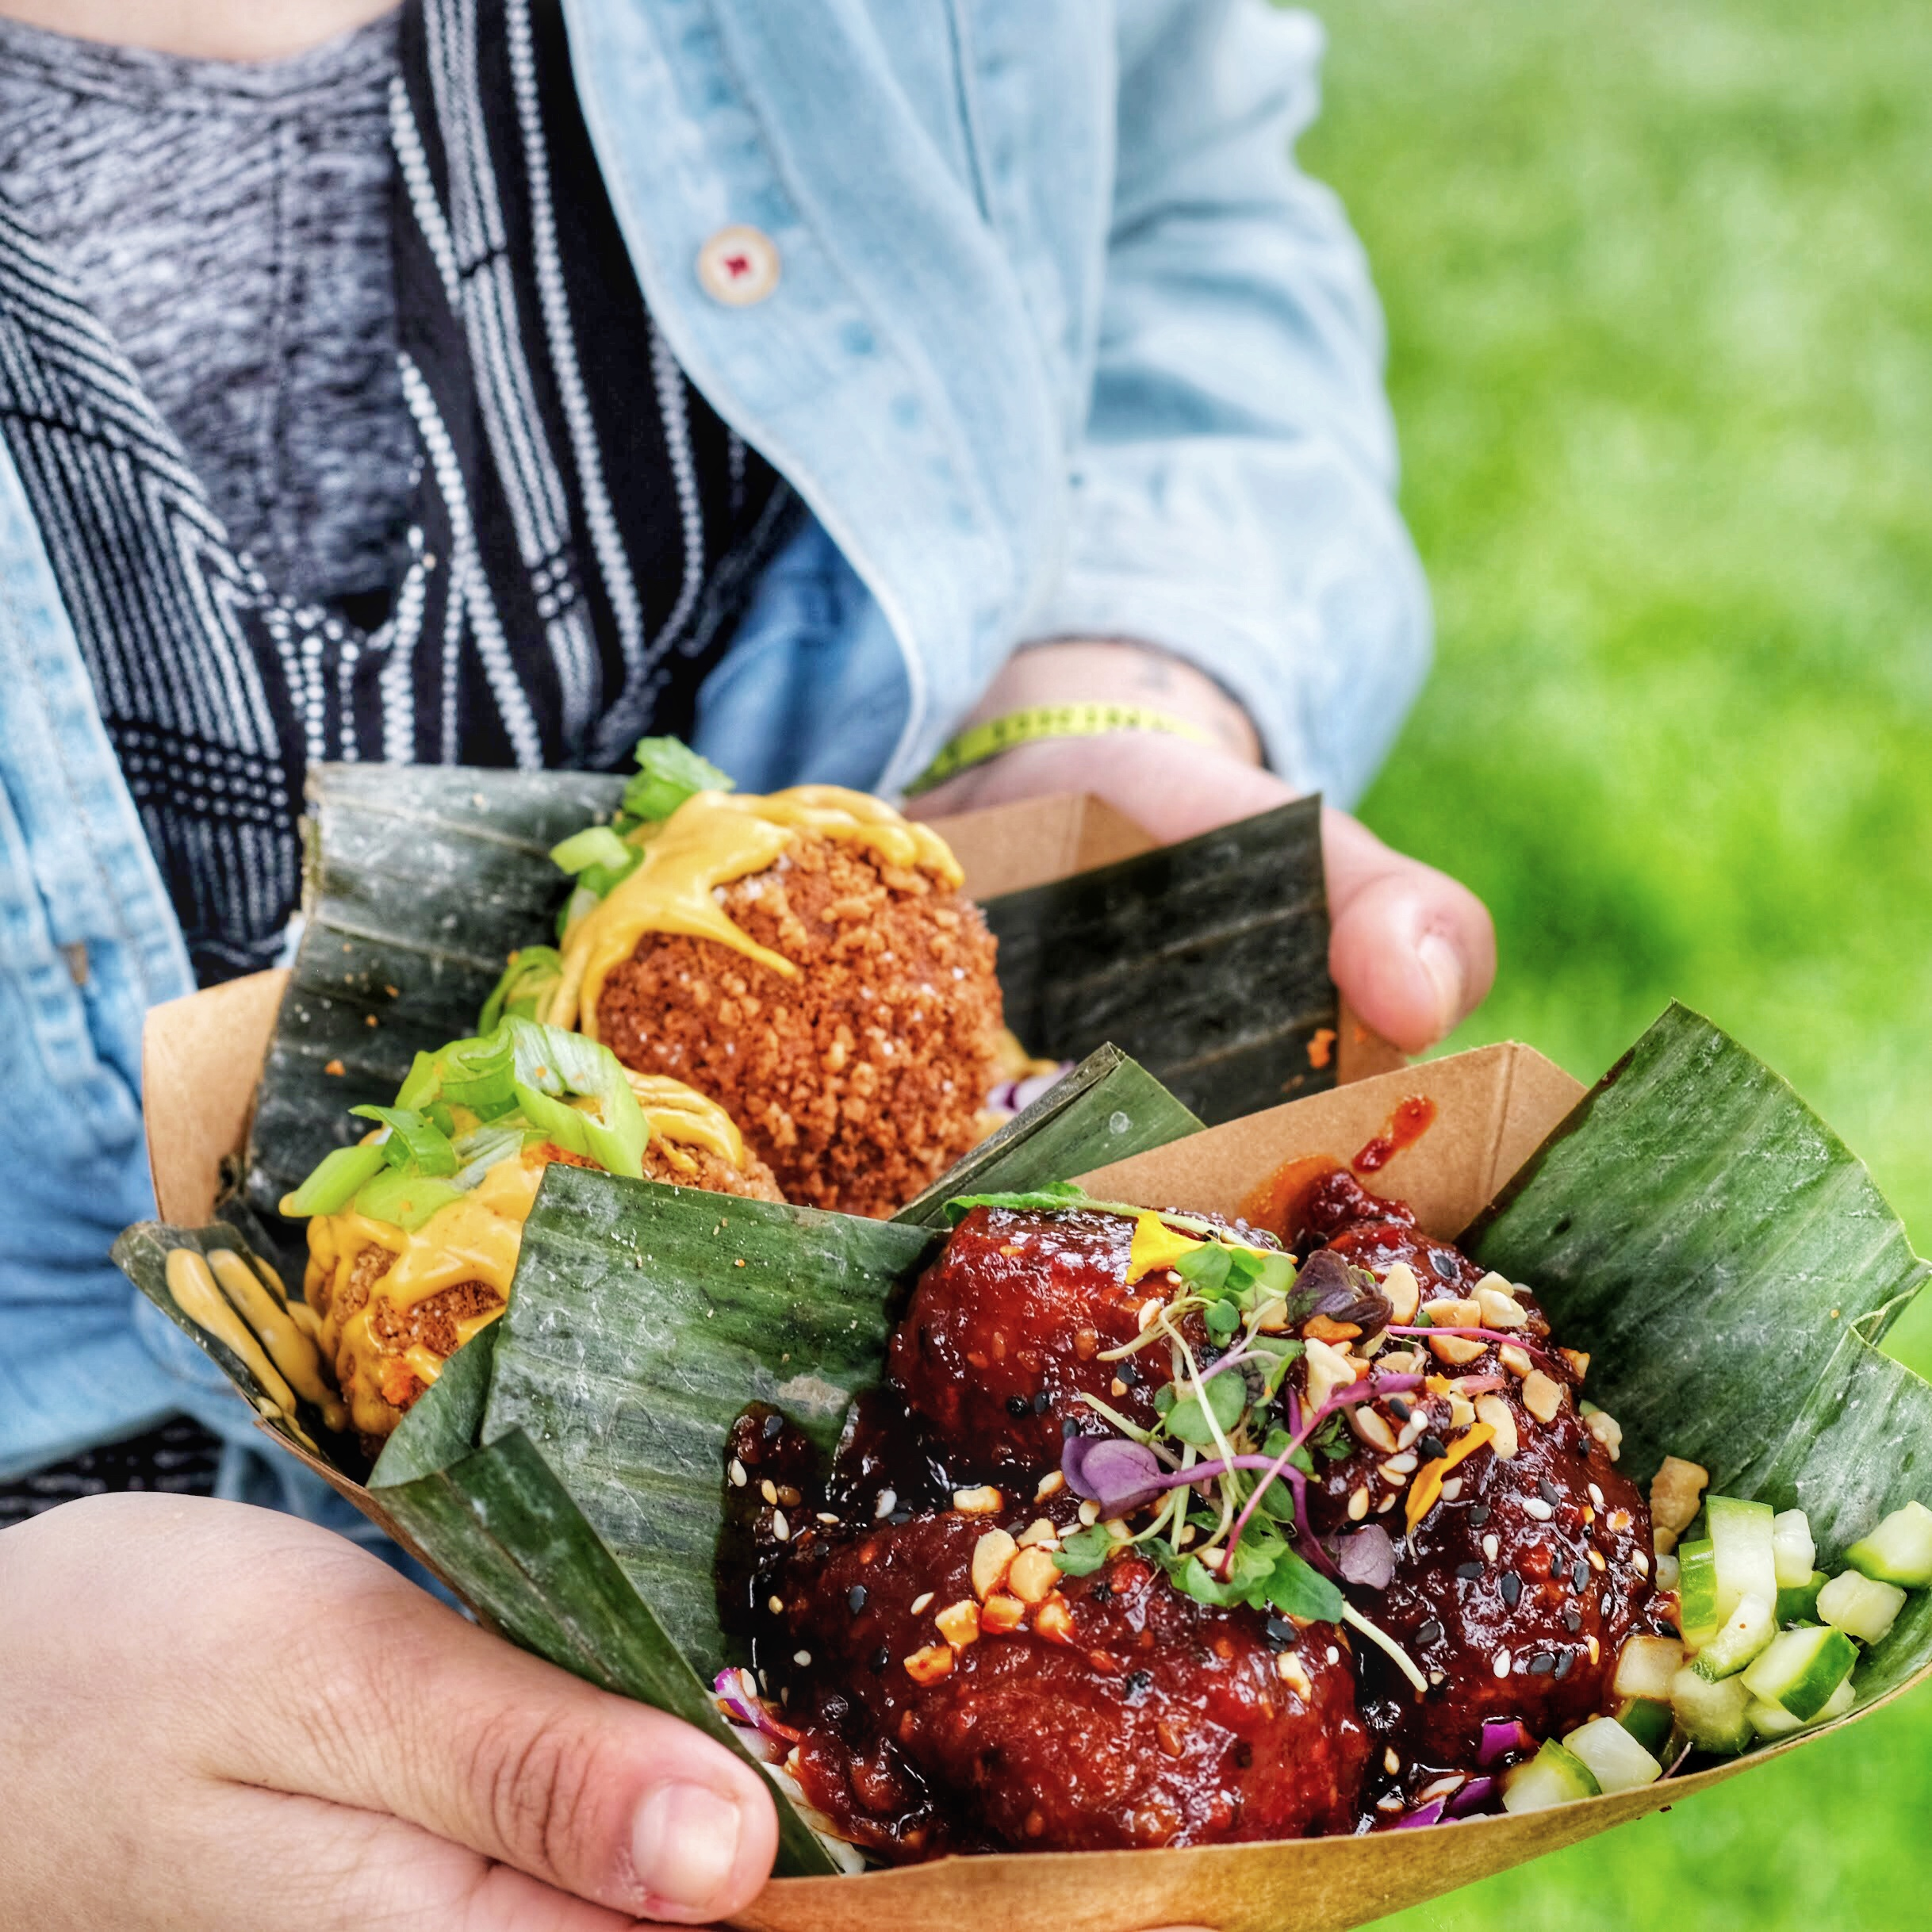 From Seattle, Washington with serious tiki vibes. Featured here is the fried mac and cheese balls and the fried spicy Korean seitan